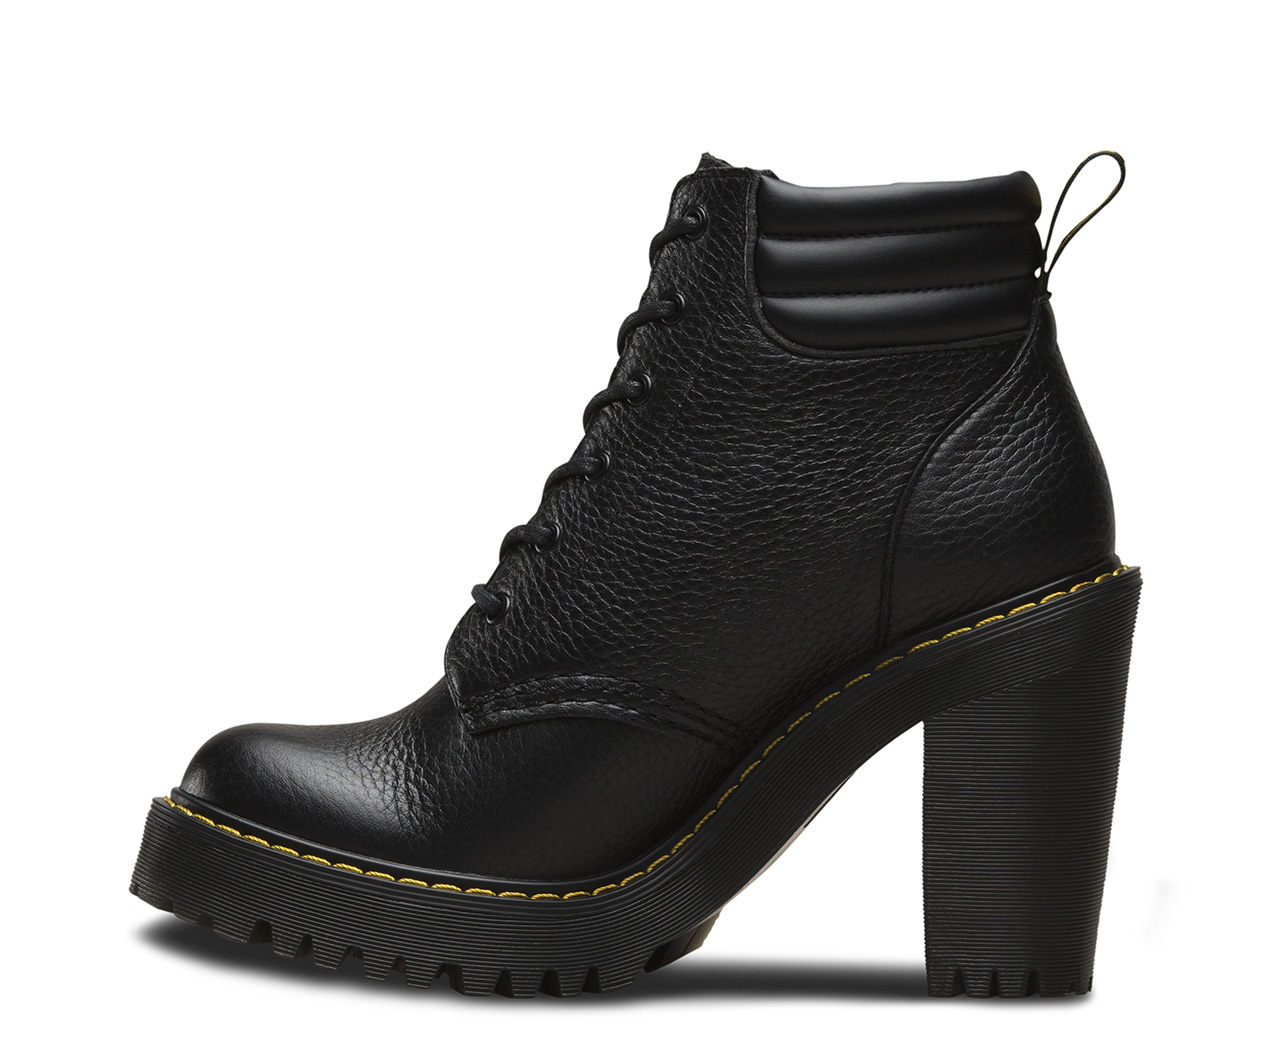 Persephone Aunt Sally Womens Boots Dr Martens